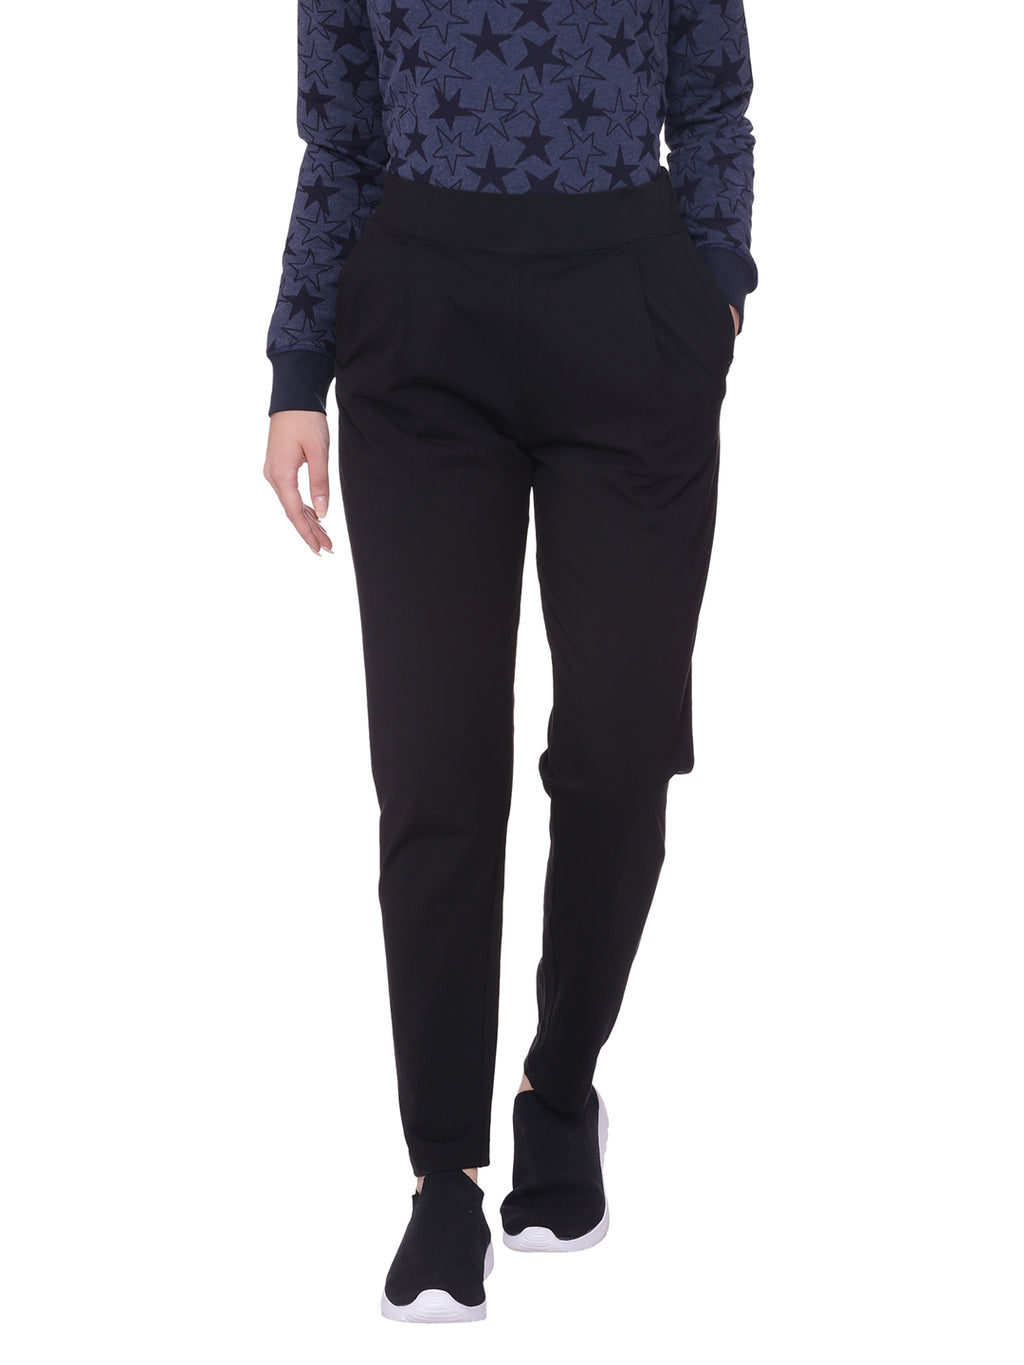 A woman wearing black organic cotton lounge pants